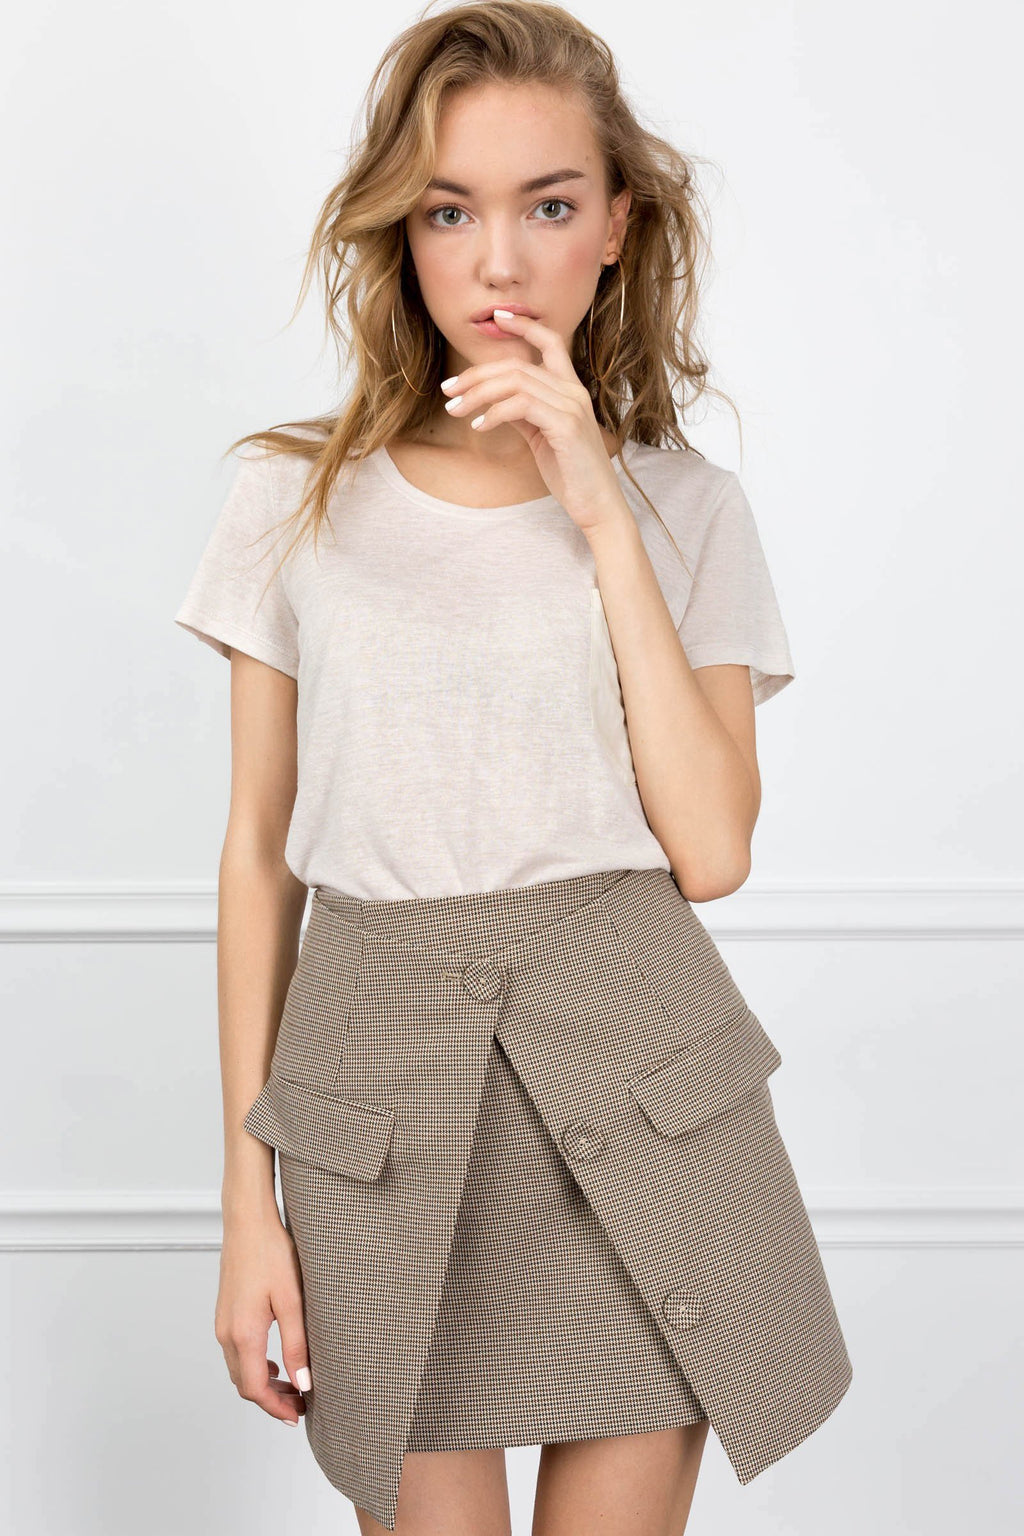 The Jasmine Skirt in Pants by J.ING - an L.A based women's fashion line